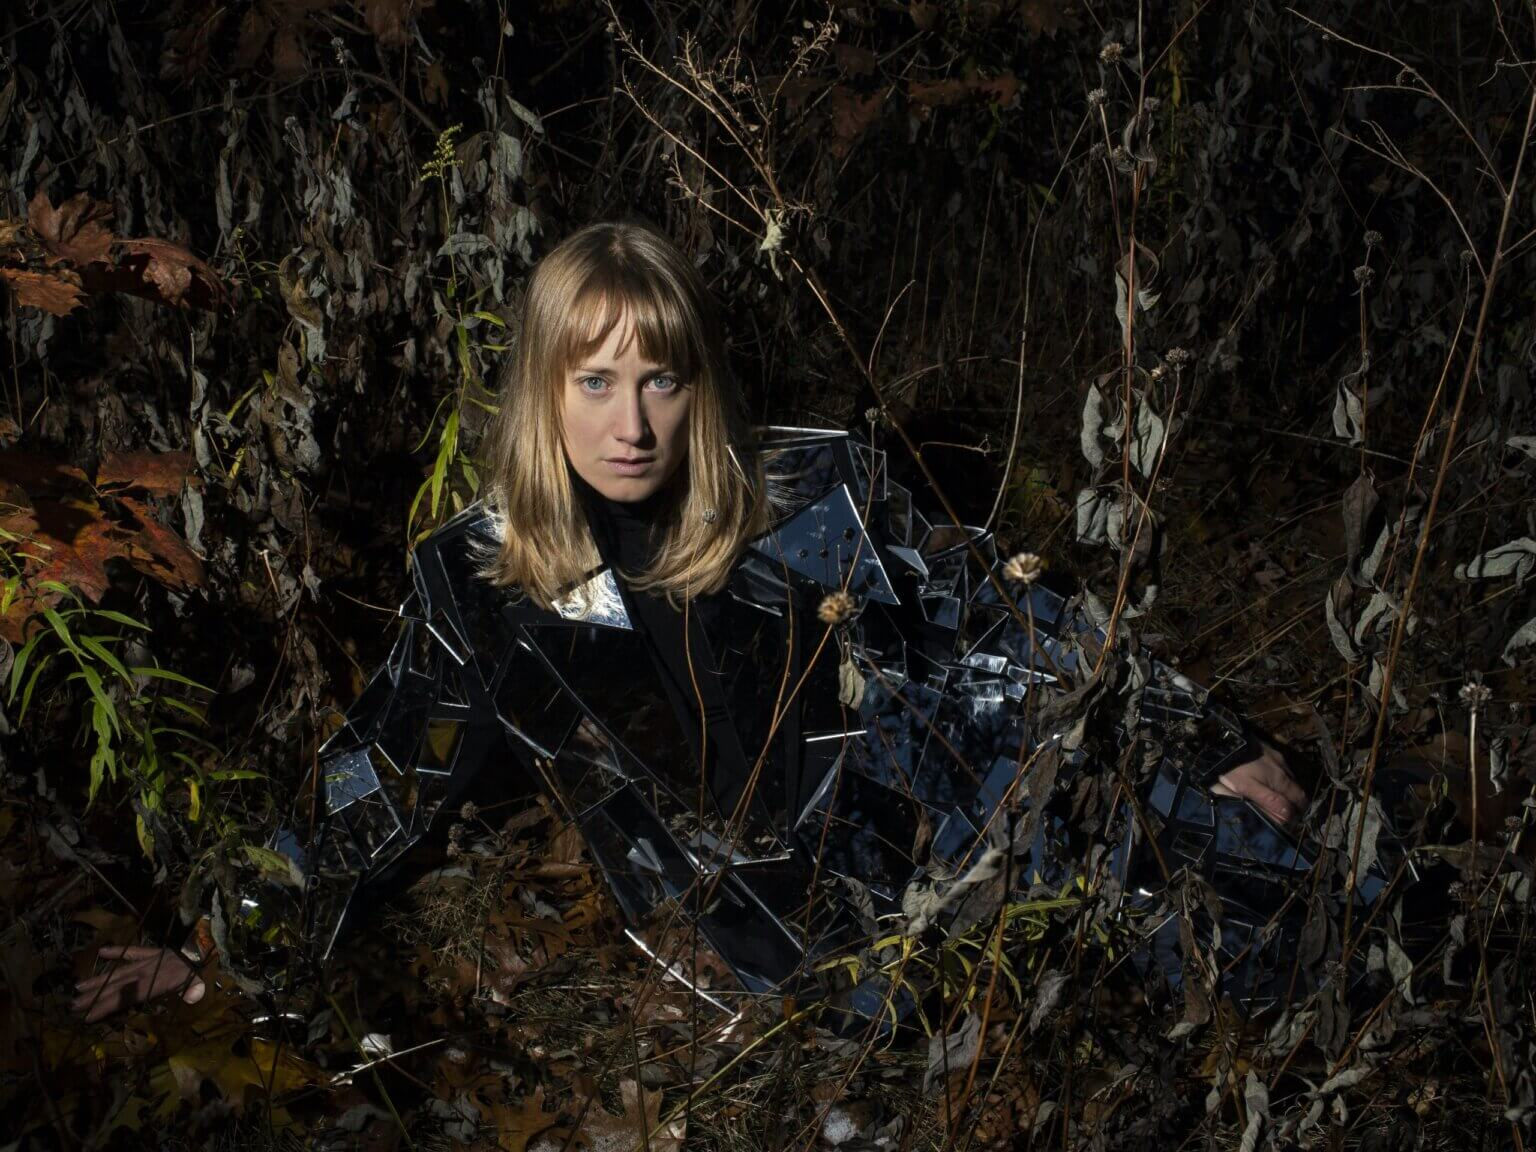 Interview with The Weather Station by Leslie Ken Chu for Northern Transmissions